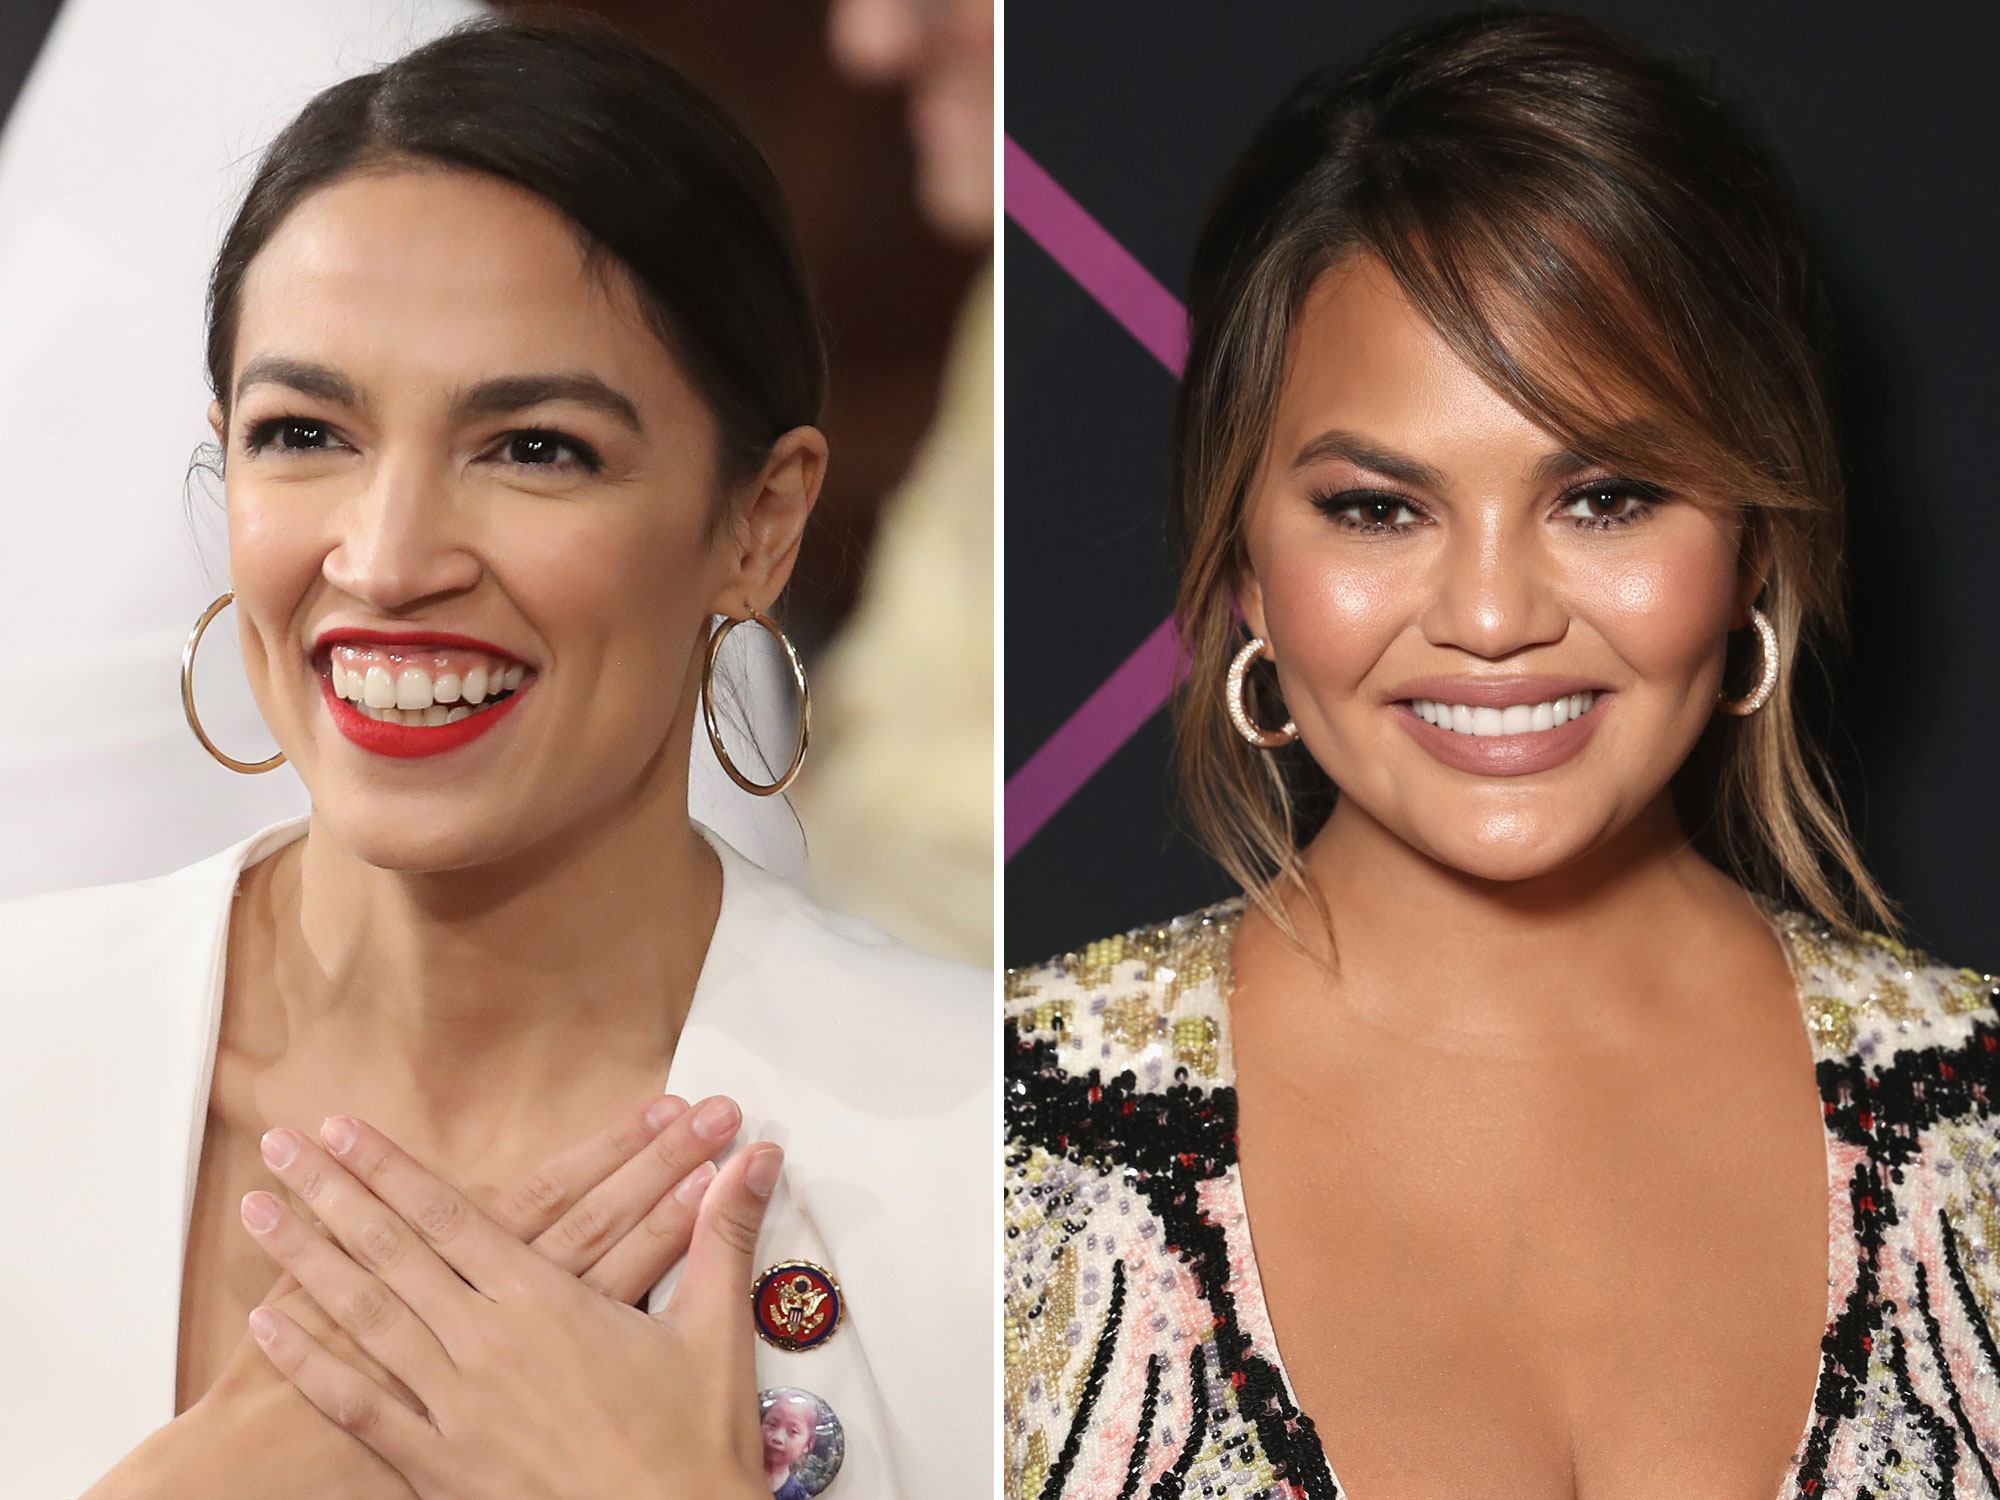 We Have Decided That Chrissy Teigen and Alexandria Ocasio-Cortez Are Best Friends Now